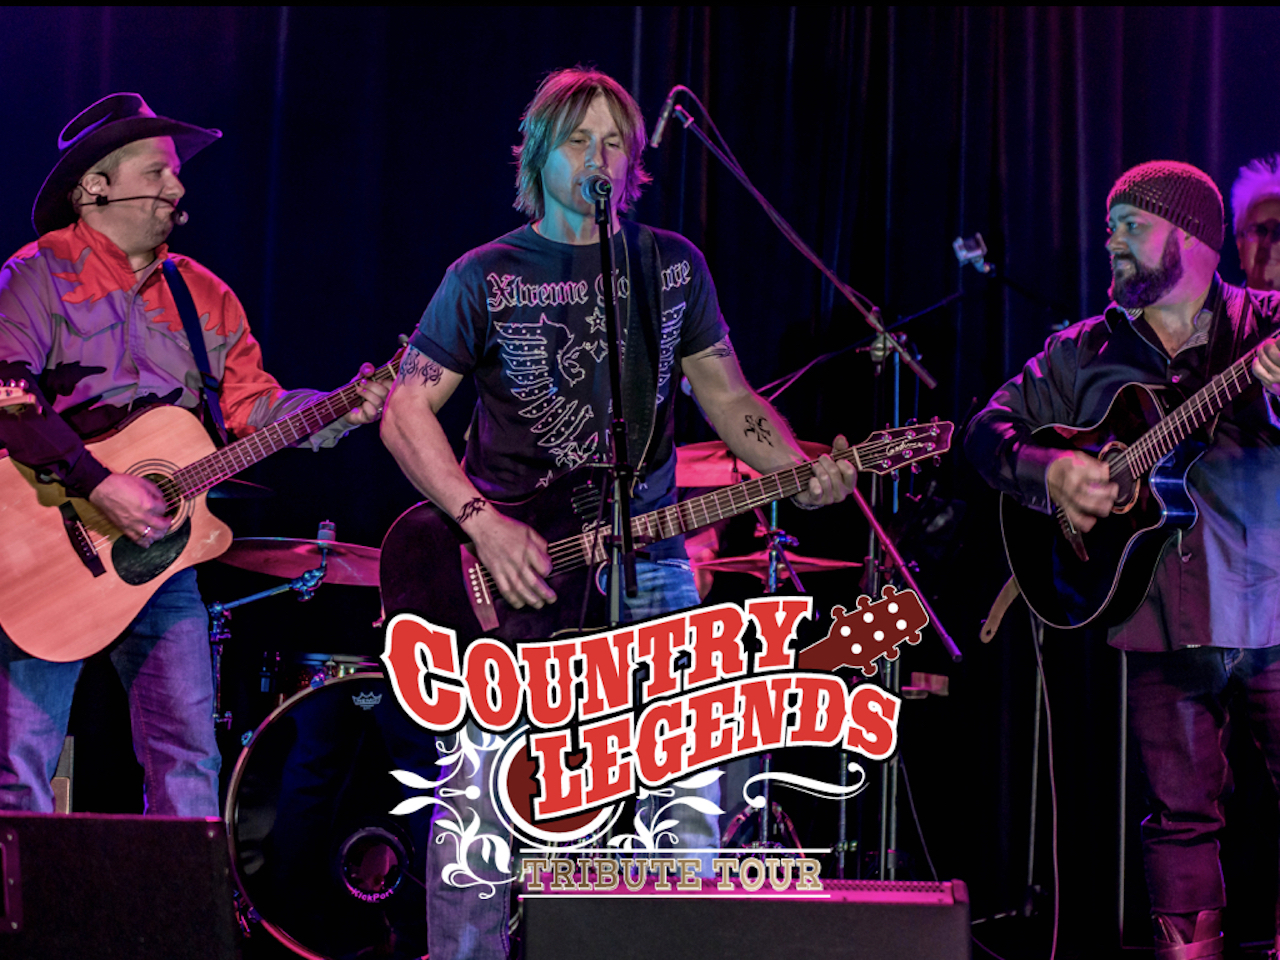 The Country Legends Tribute Tour  sc 1 st  Les Smith & The Country Legends Tribute Tour - Les Smith | Les Smith